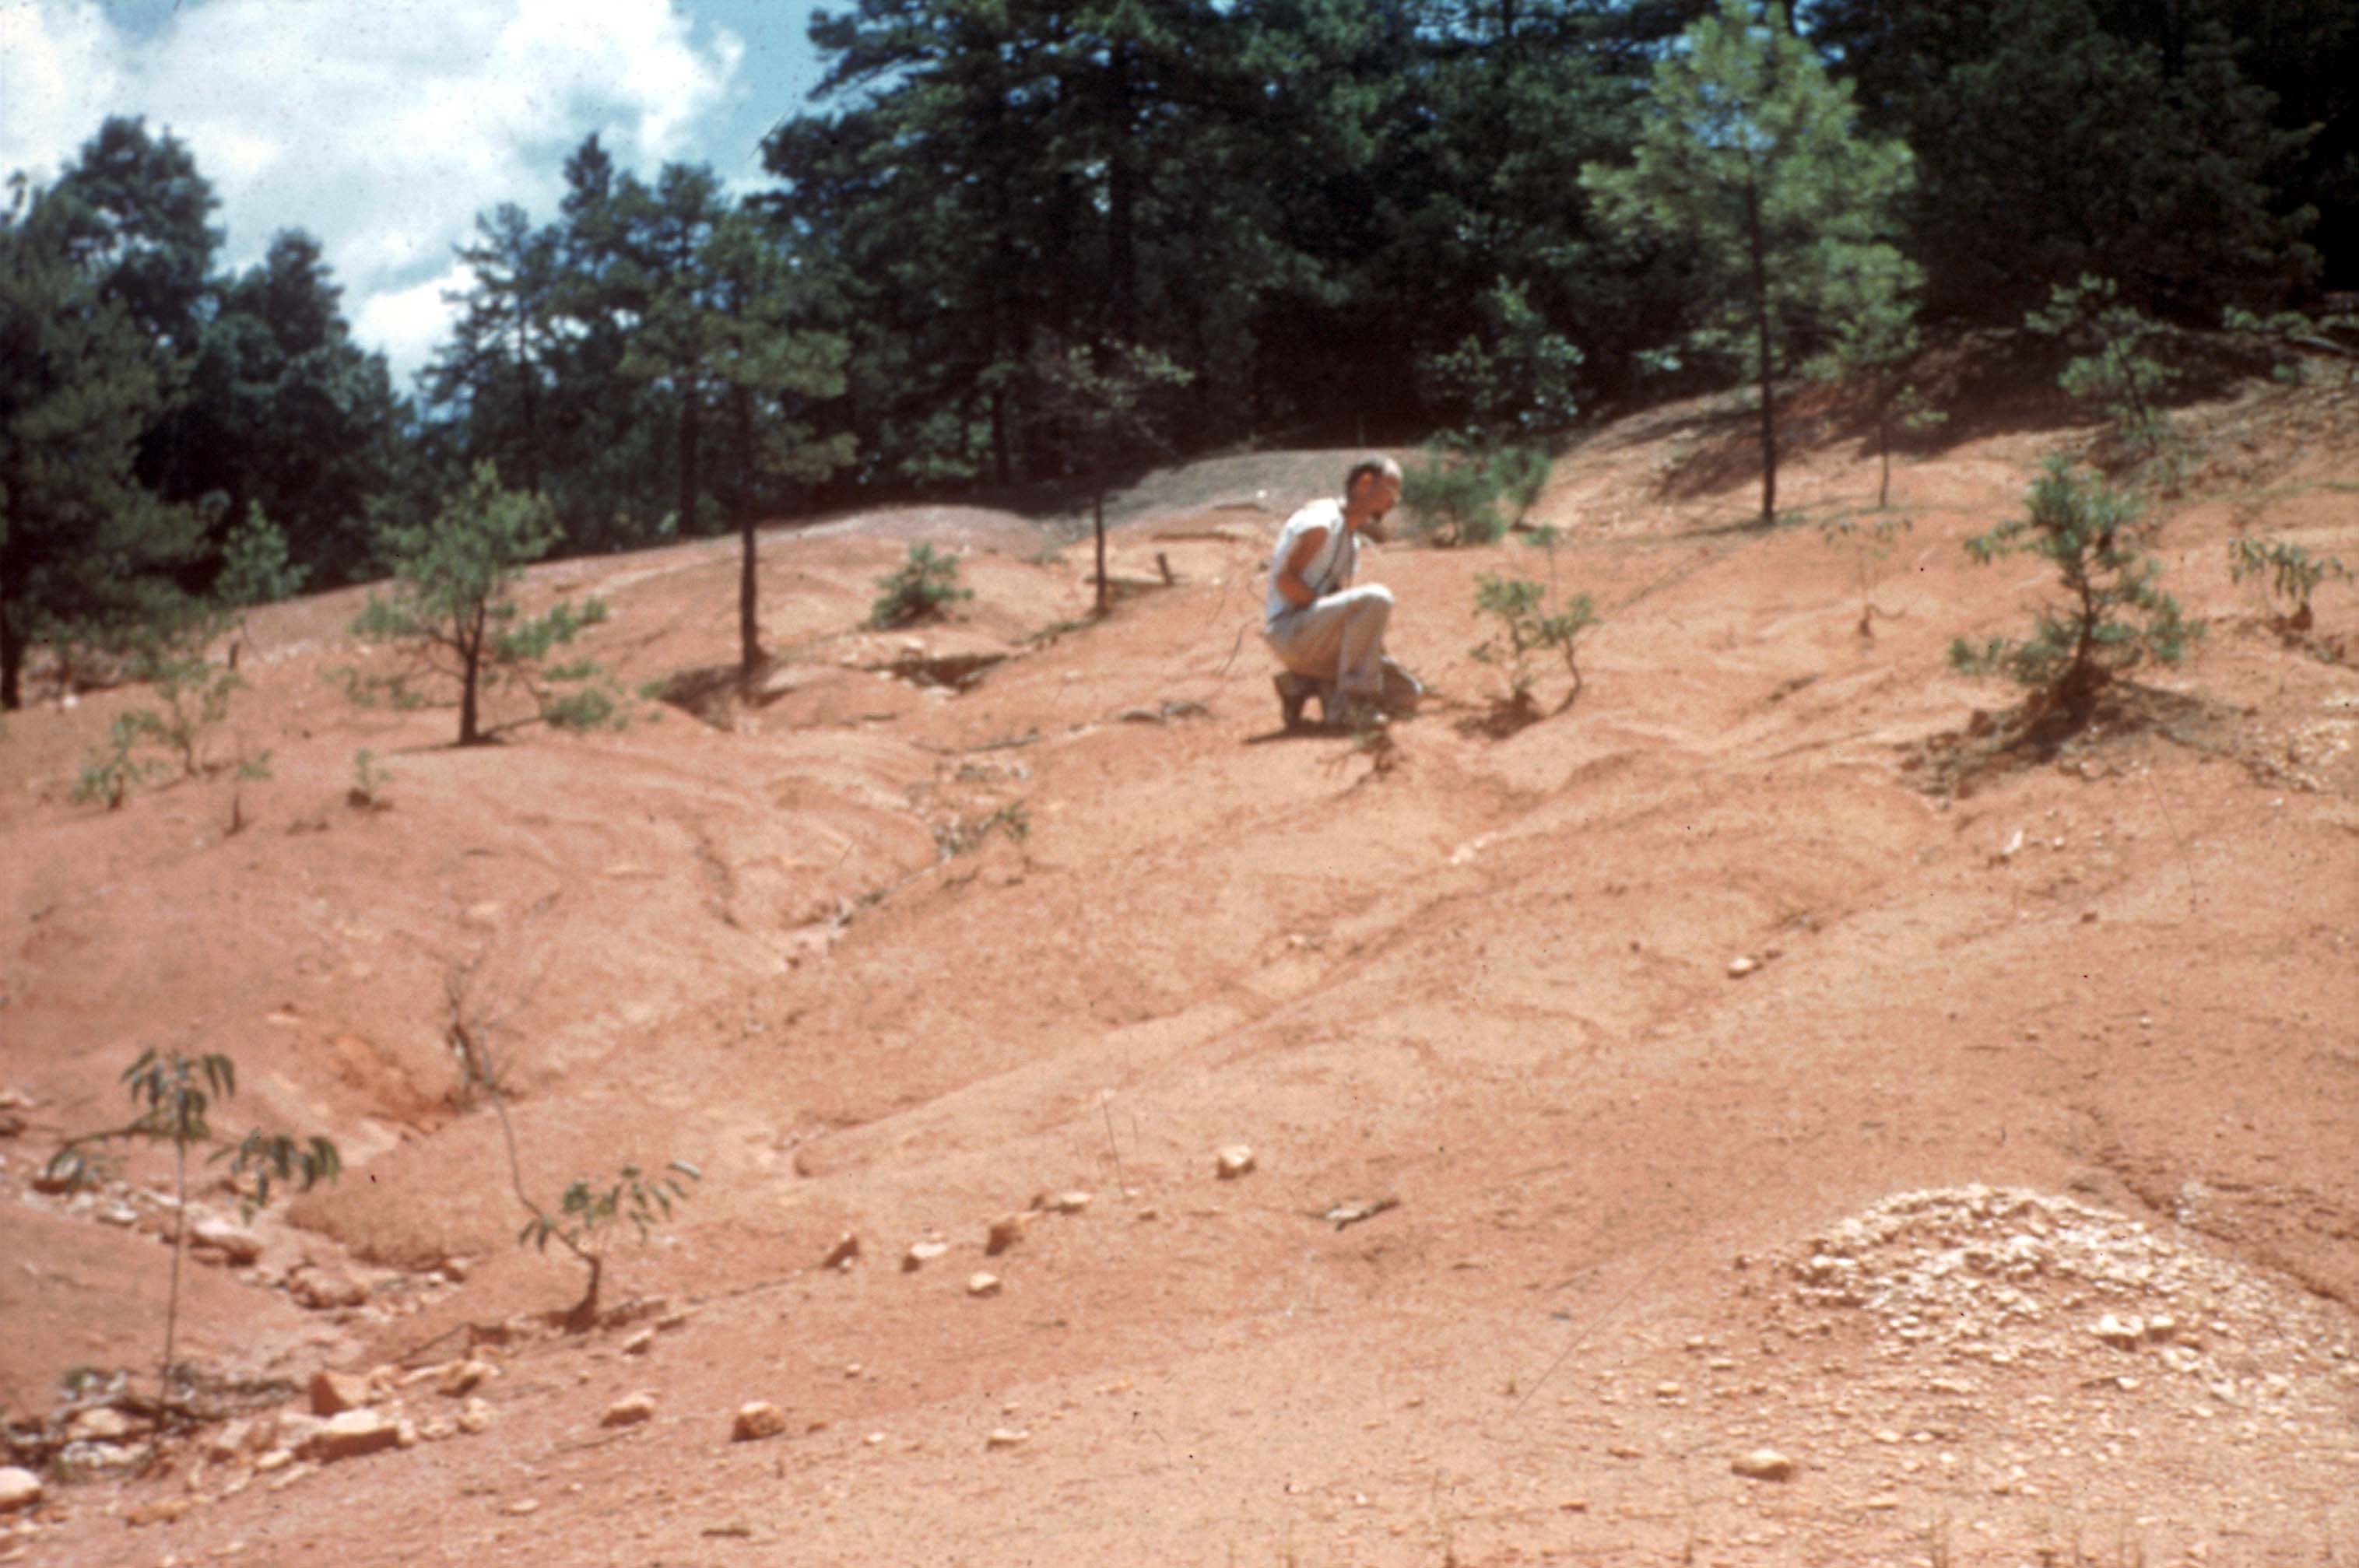 Calhoun Critical Zone Observatory before replanting of trees